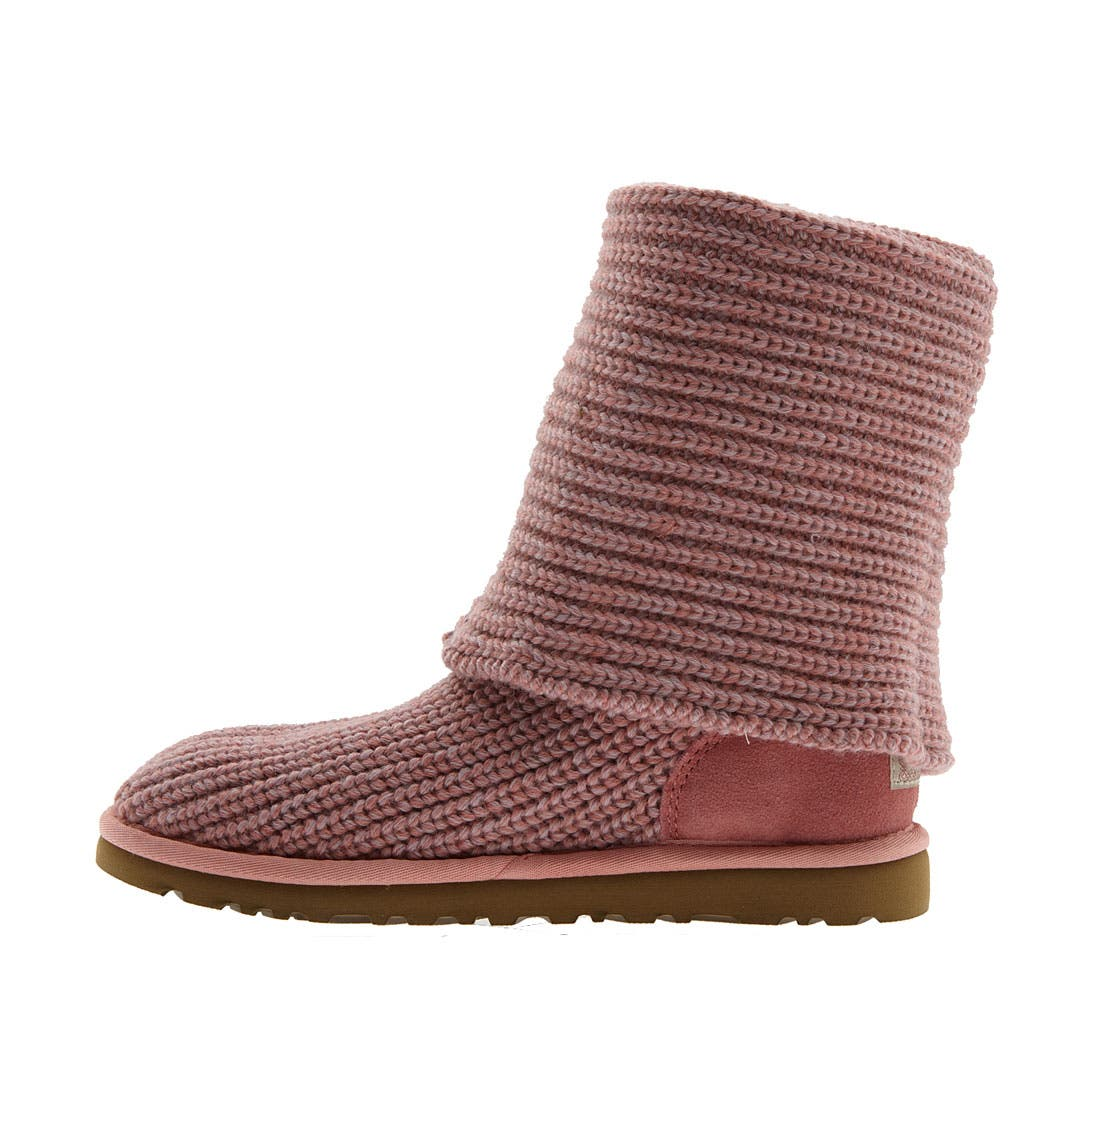 ,                             'Cardy' Classic Knit Boot,                             Alternate thumbnail 66, color,                             694